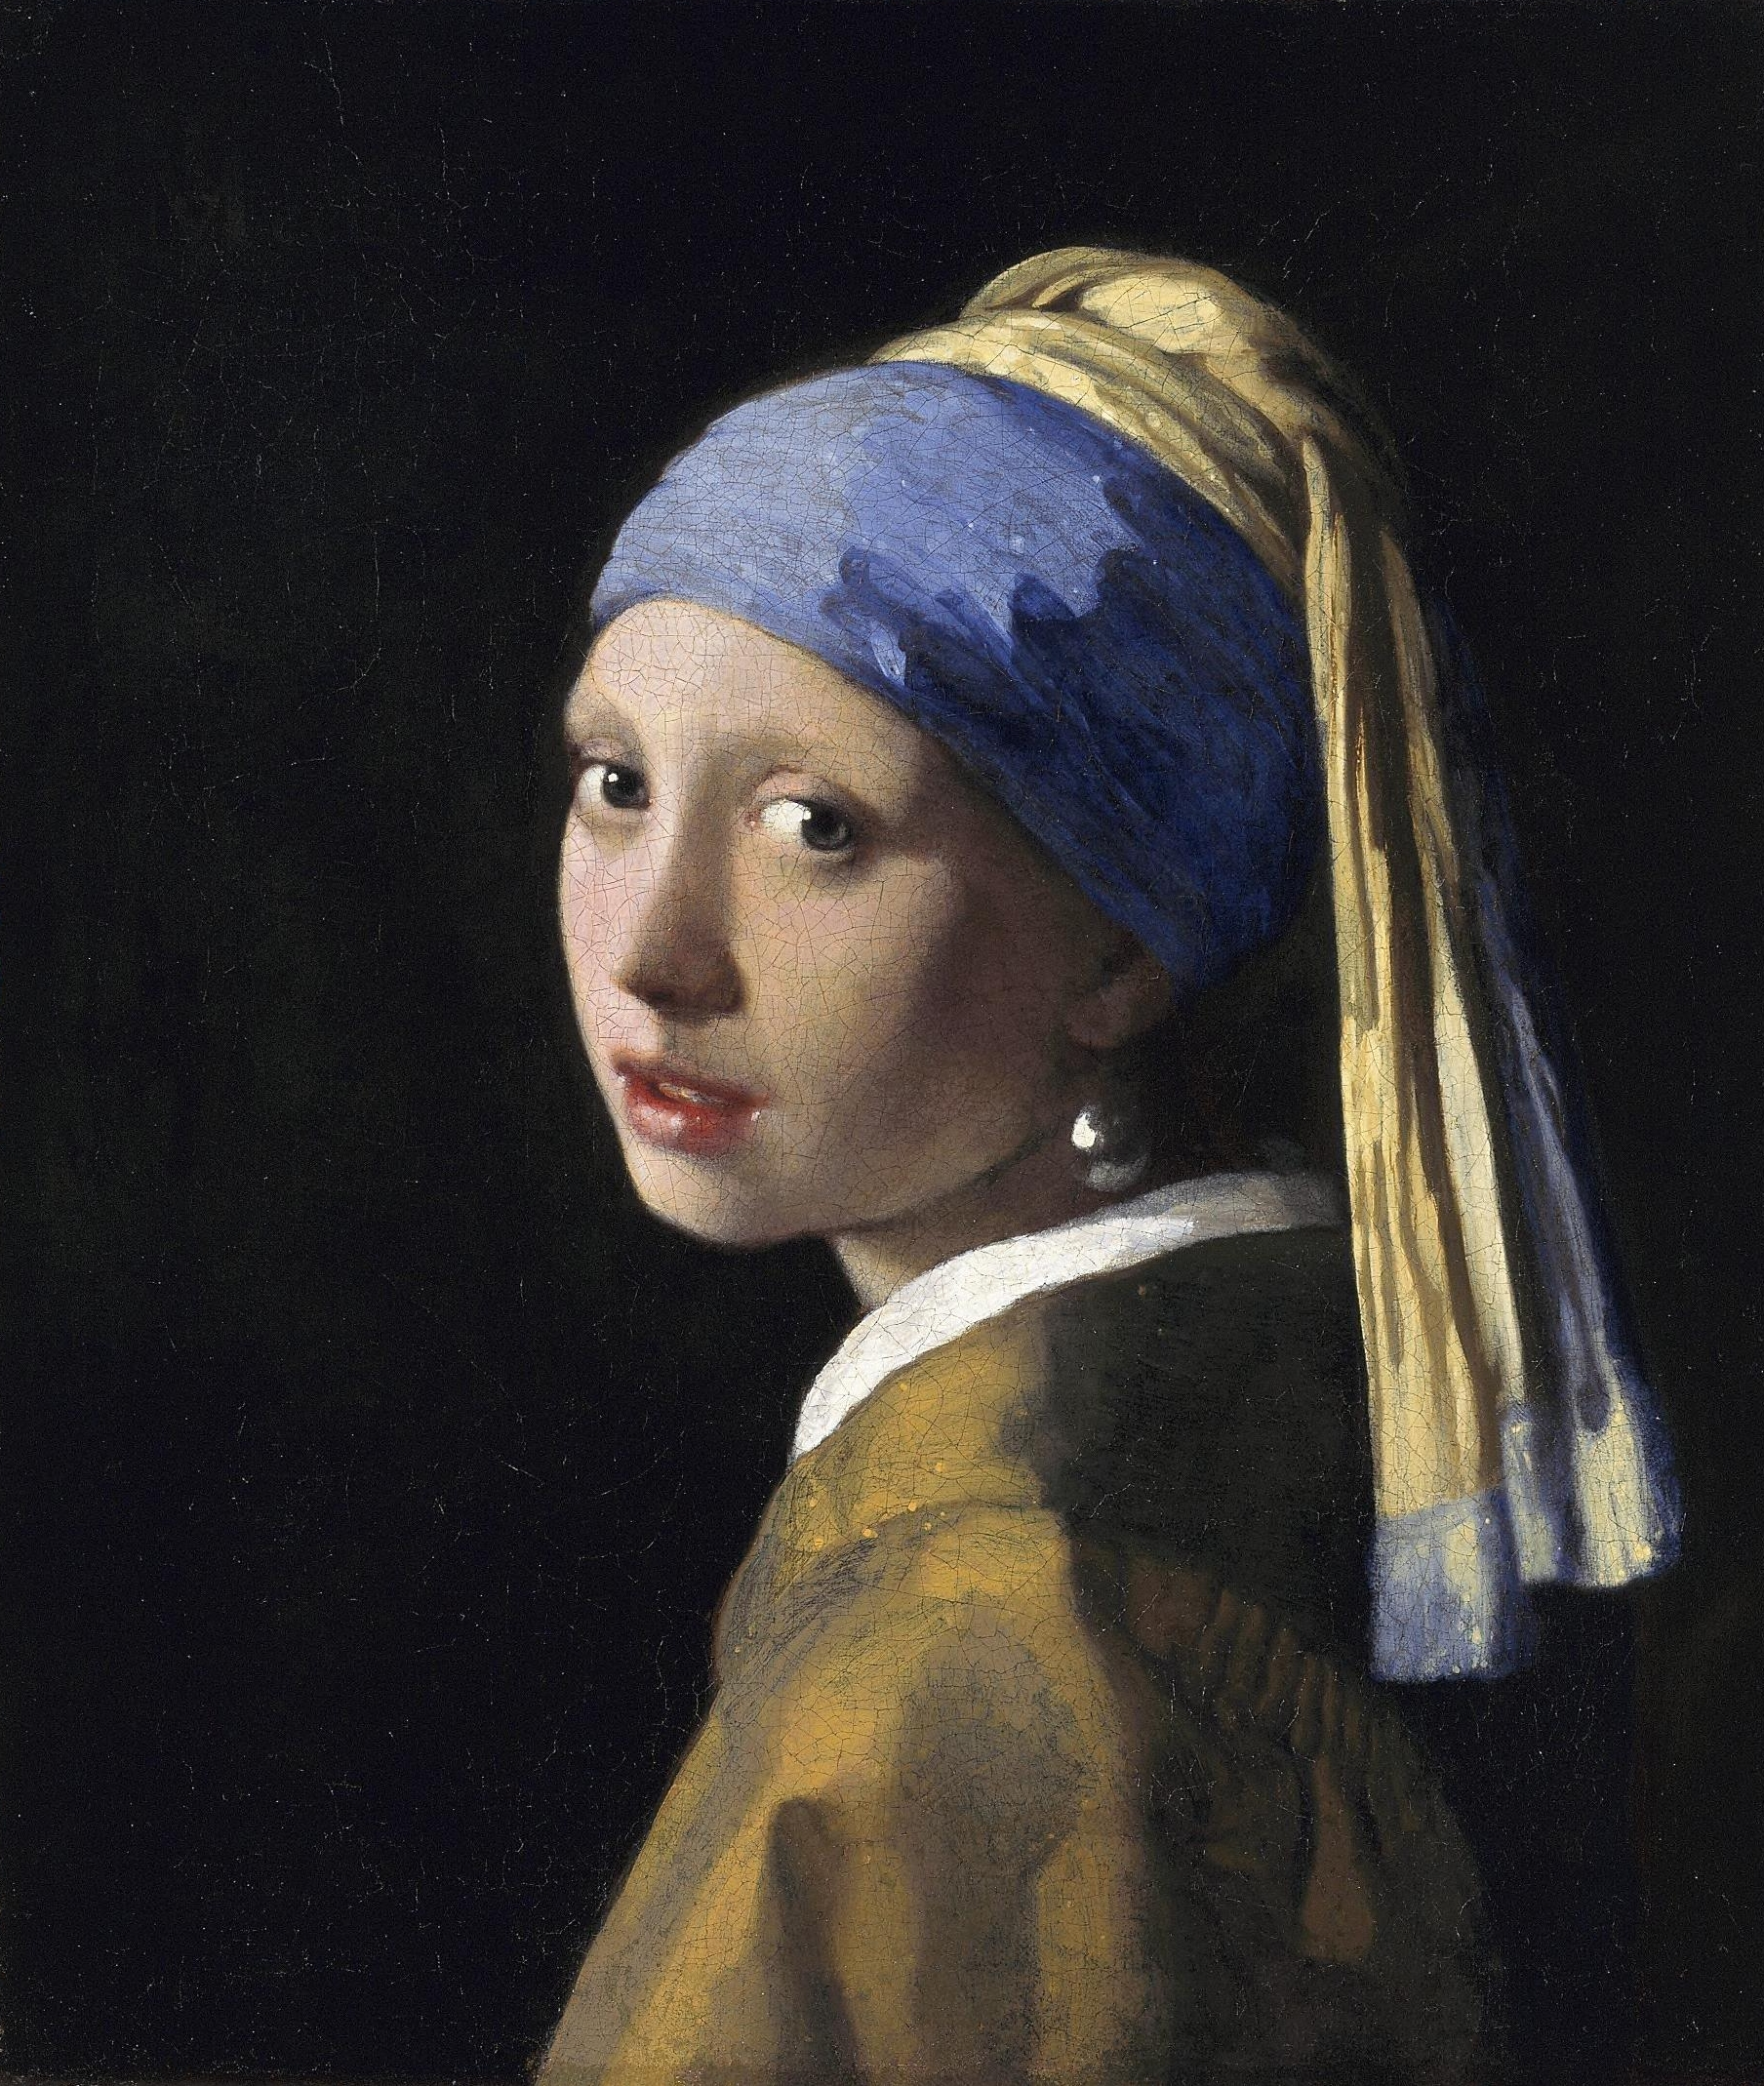 https://i1.wp.com/upload.wikimedia.org/wikipedia/commons/c/ce/Girl_with_a_Pearl_Earring.jpg